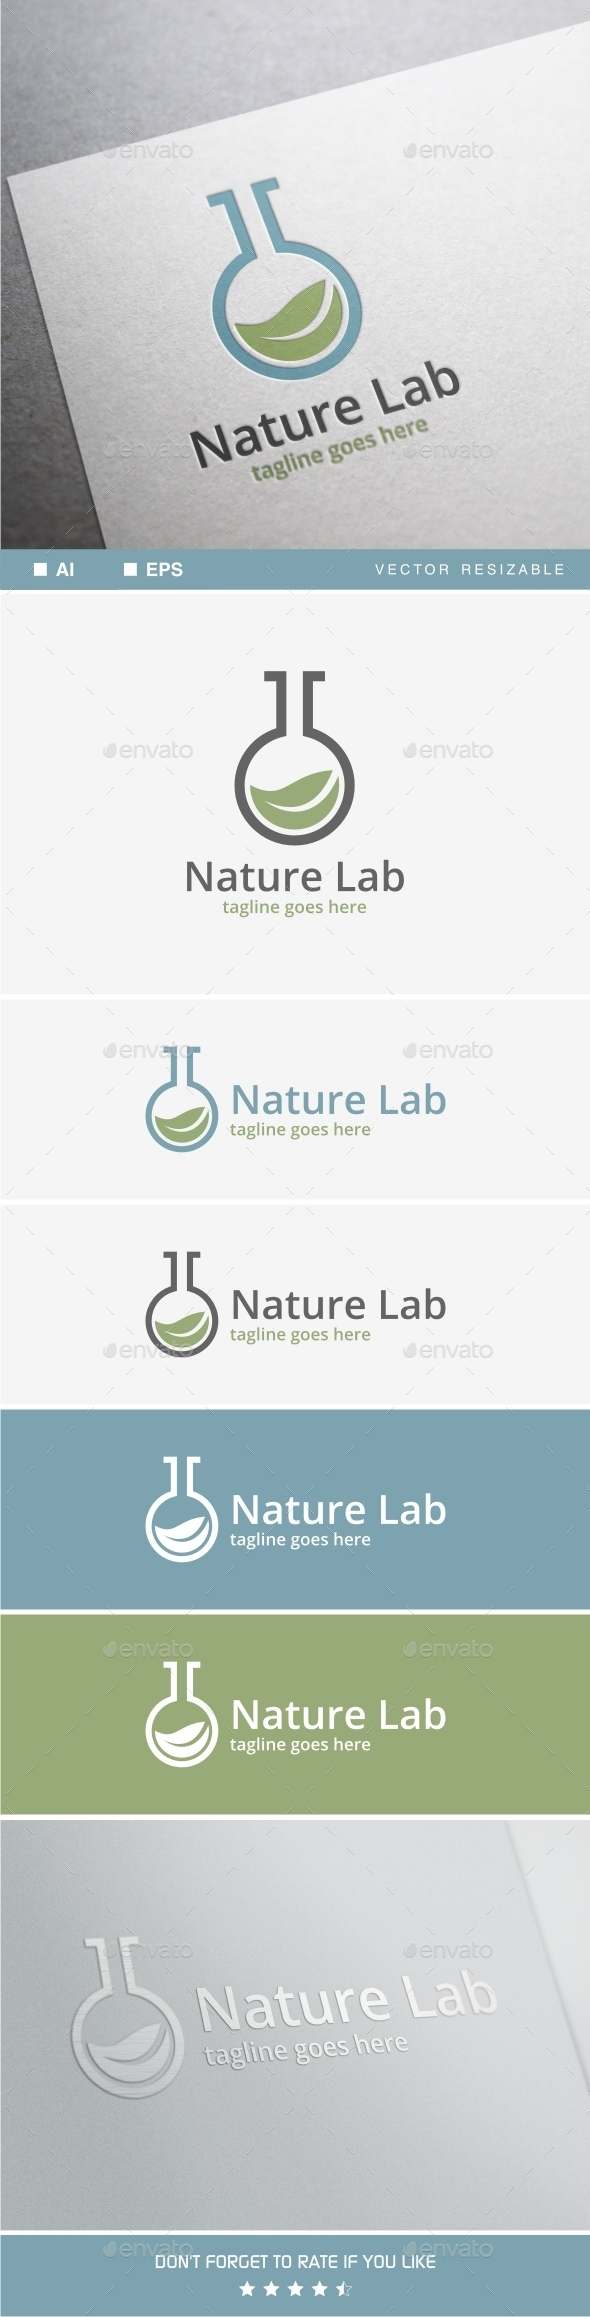 GraphicRiver Nature Lab Logo 11770741